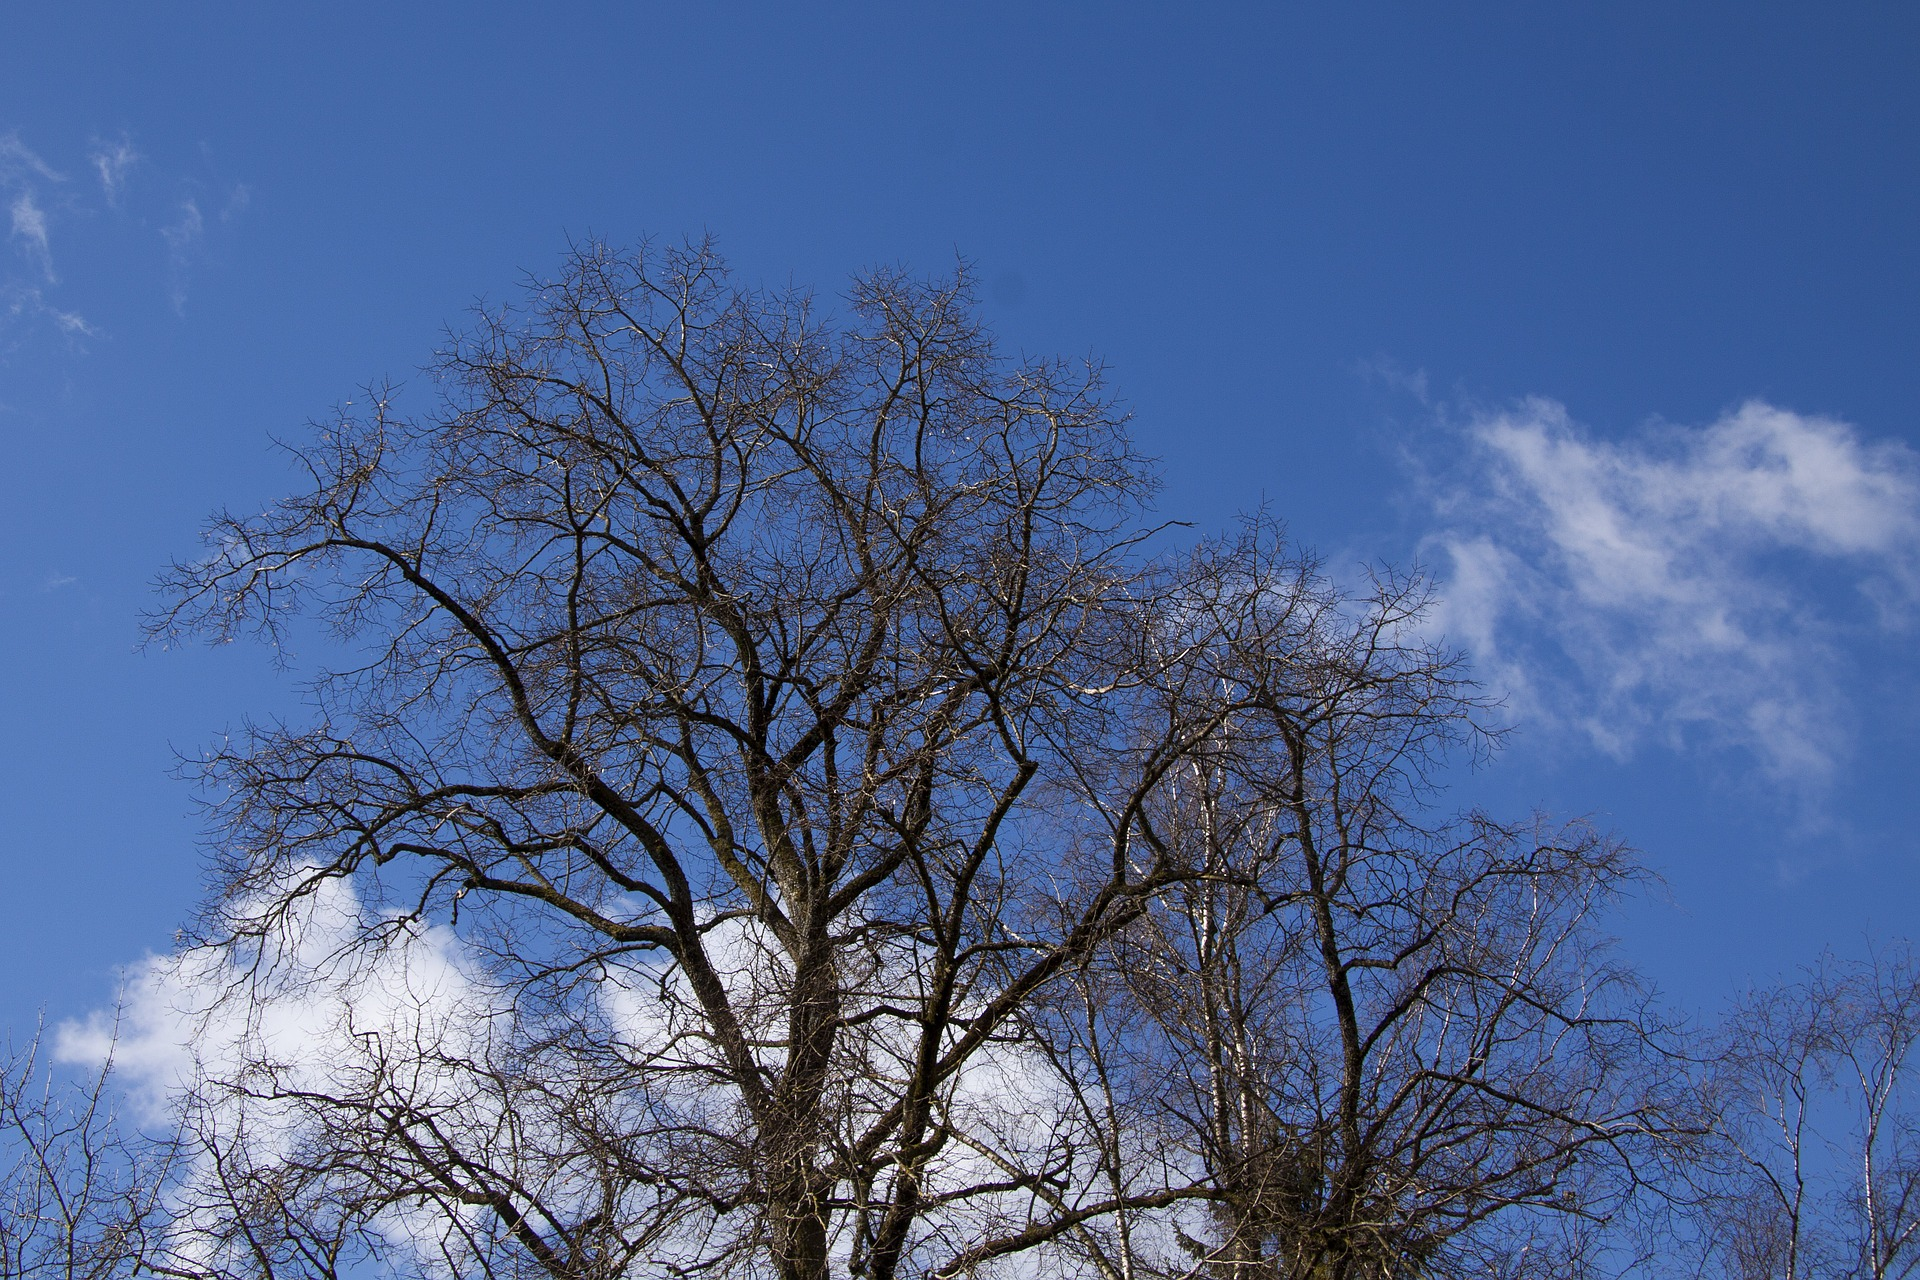 Trees after Fall, Dry, Fall, Fallen, Nature, HQ Photo